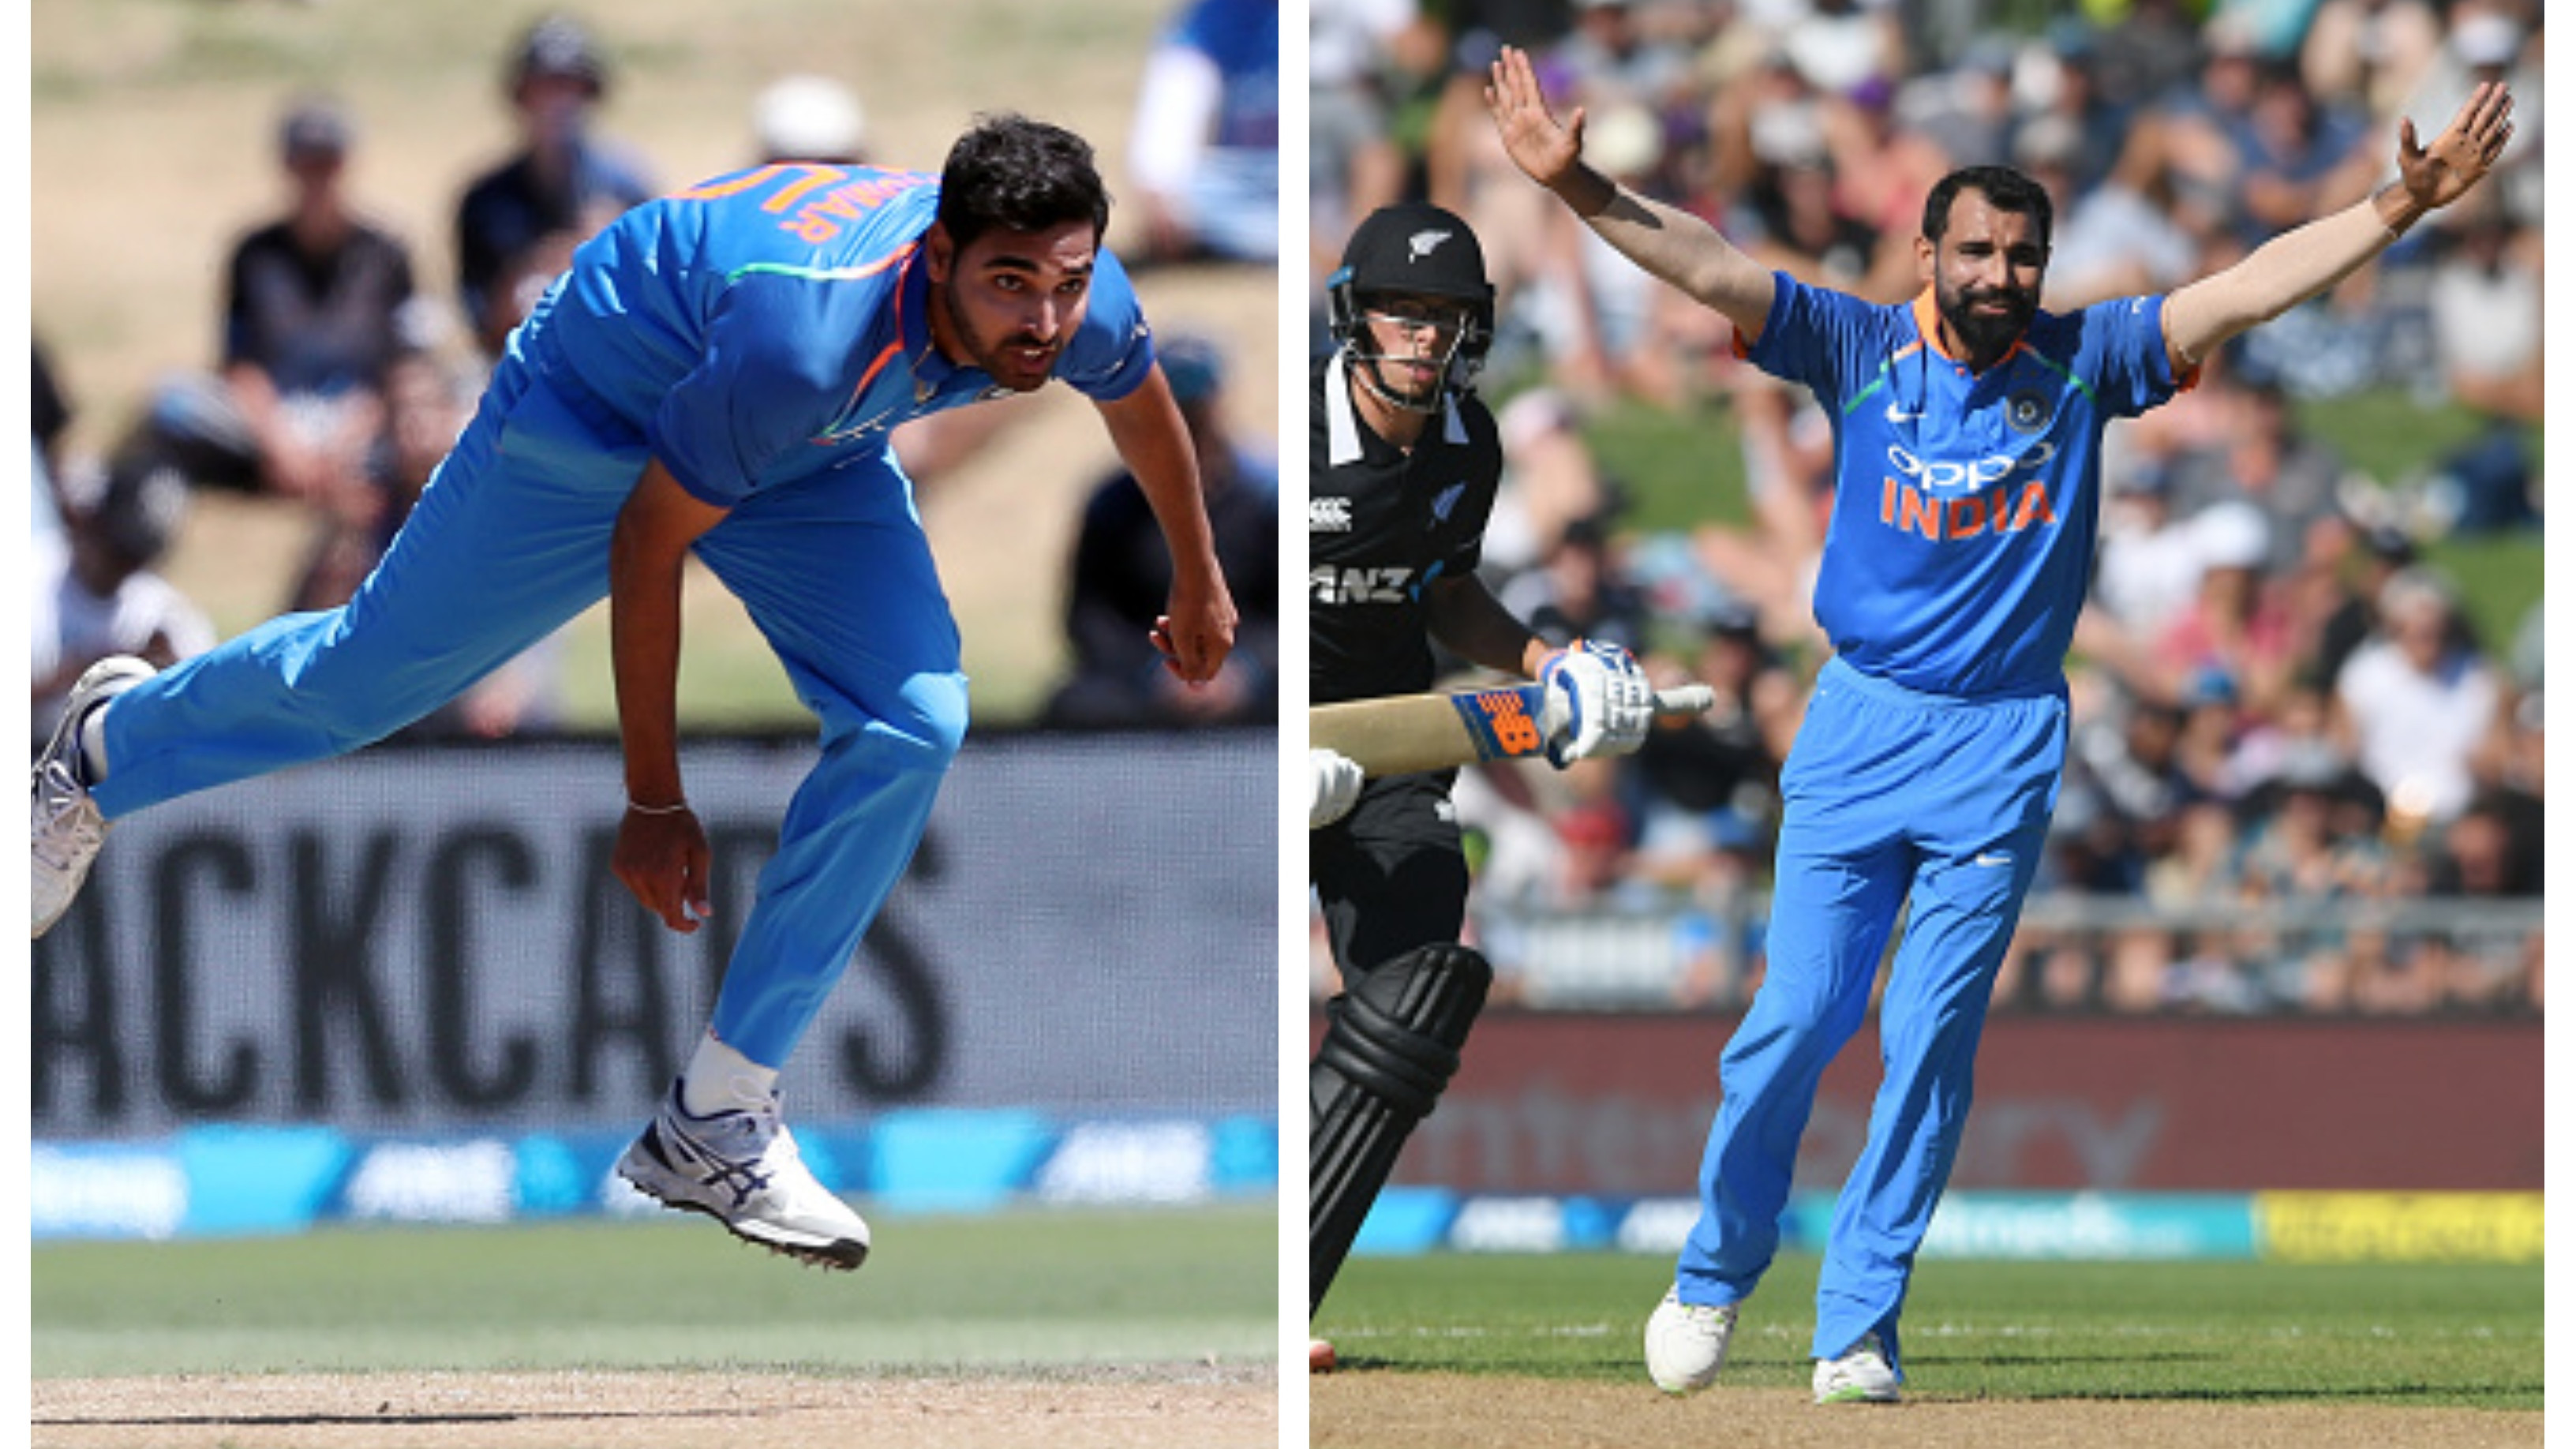 NZ v IND 2019: Bowling with Shami has been a good experience, says Bhuvneshwar Kumar